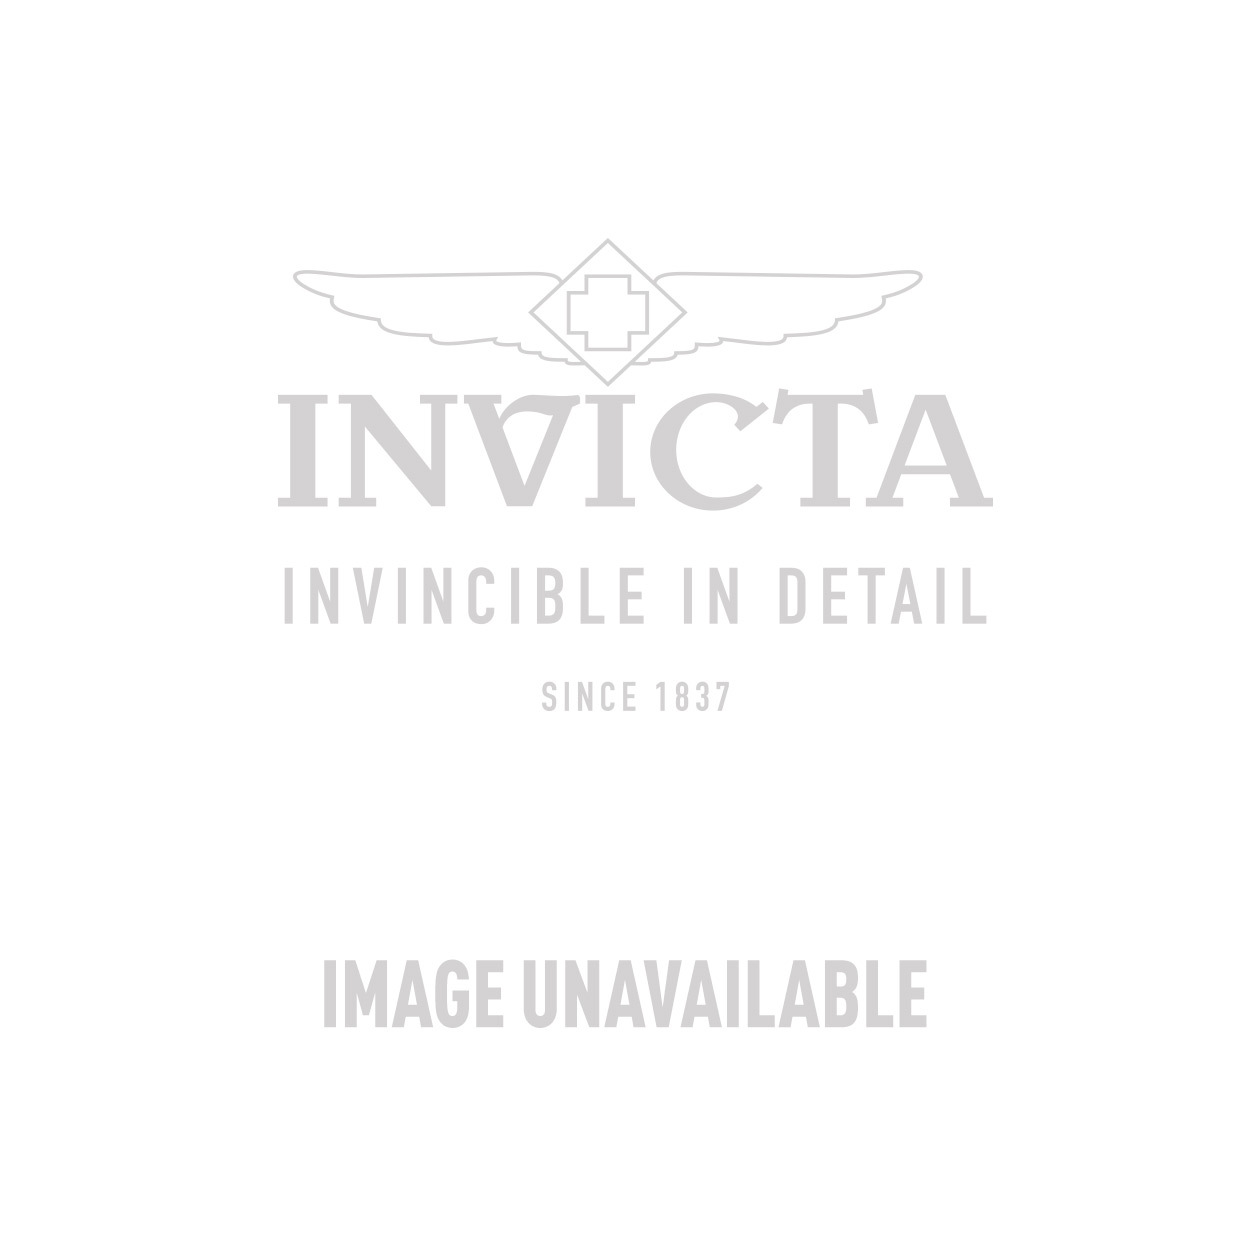 Invicta Vintage Swiss Movement Quartz Watch - Gold case with Black tone Leather band - Model 12223